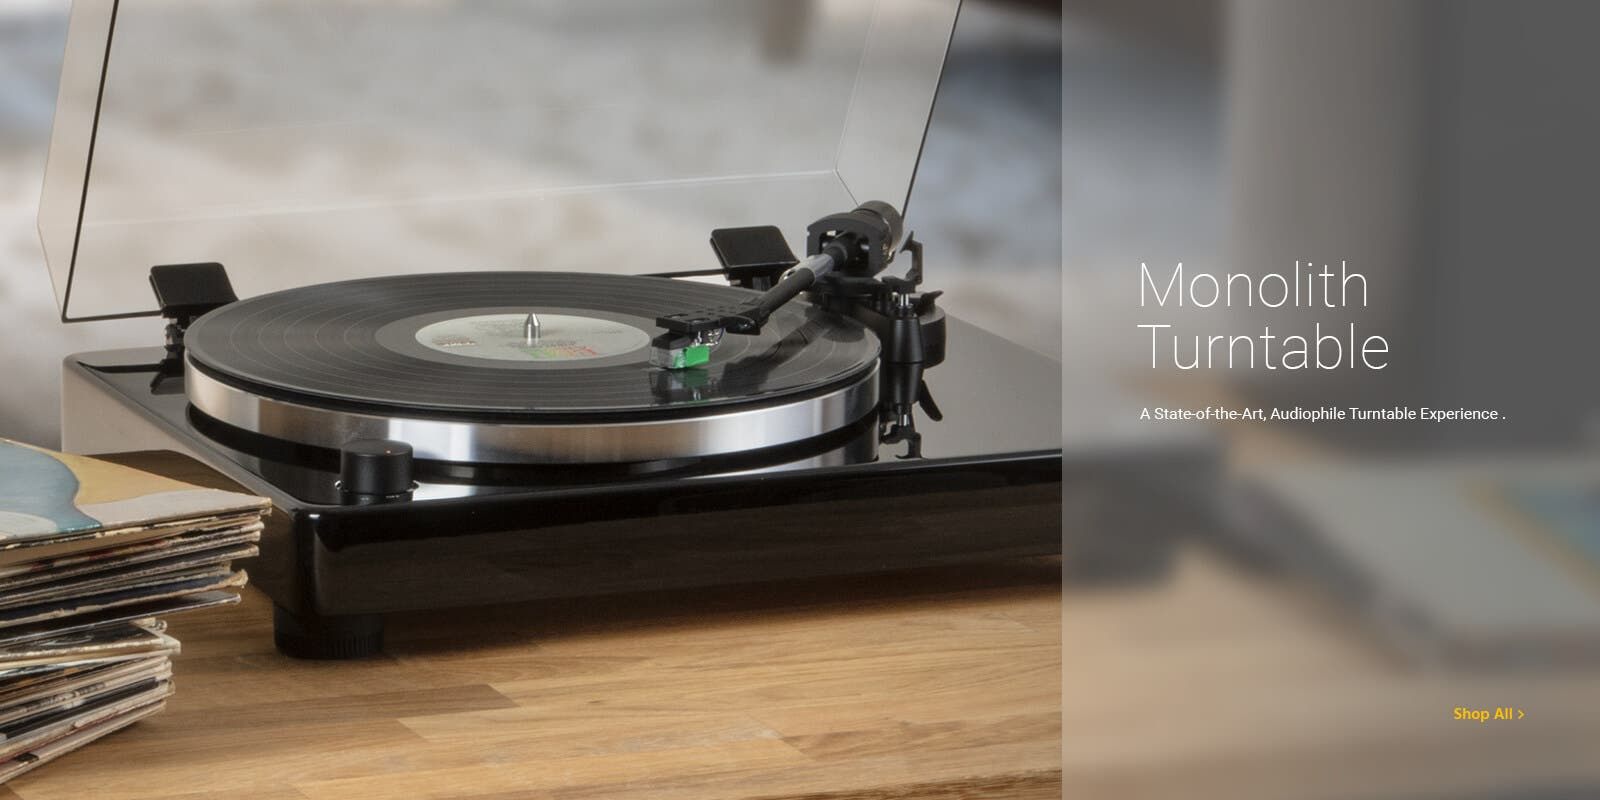 Monolith Turntable, A state-of-the-art, audiophile turntable experience, Shop